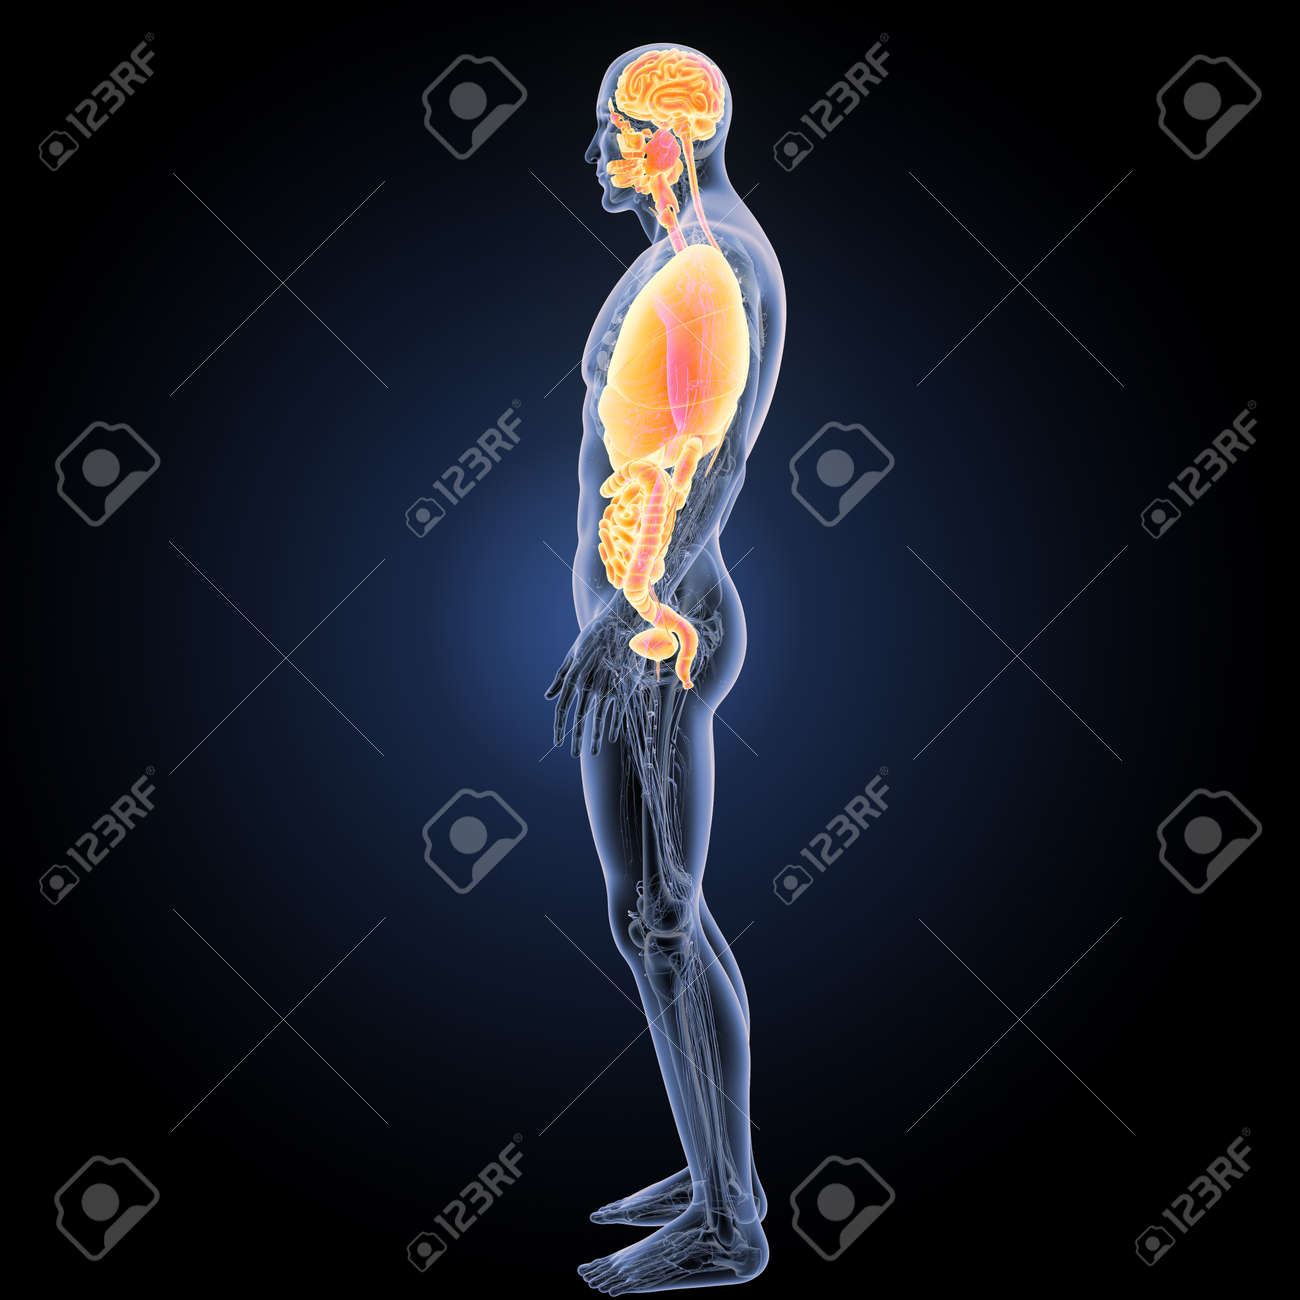 Human Organs With Anatomy Lateral View Stock Photo Picture And